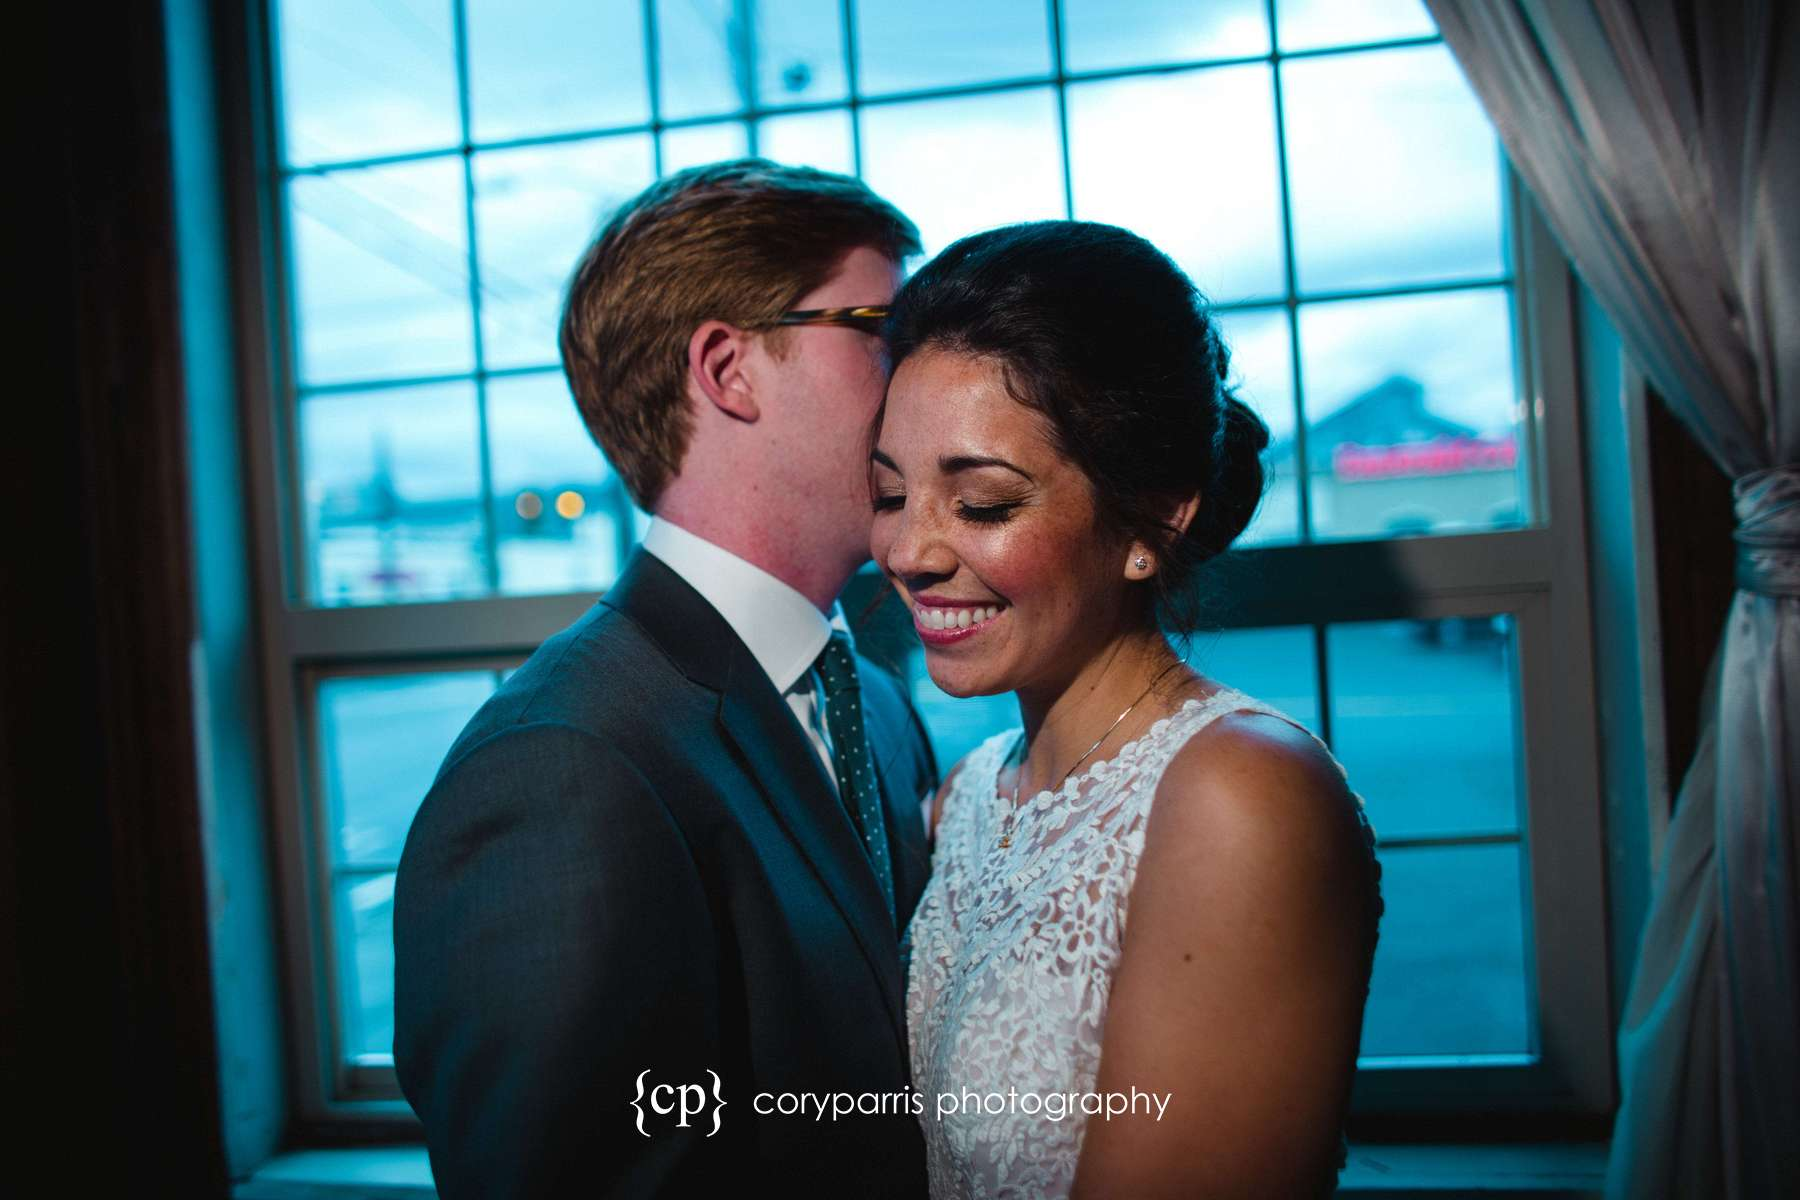 Amy & Kevin | SODO Park Wedding in Seattle - Cory Parris Photography